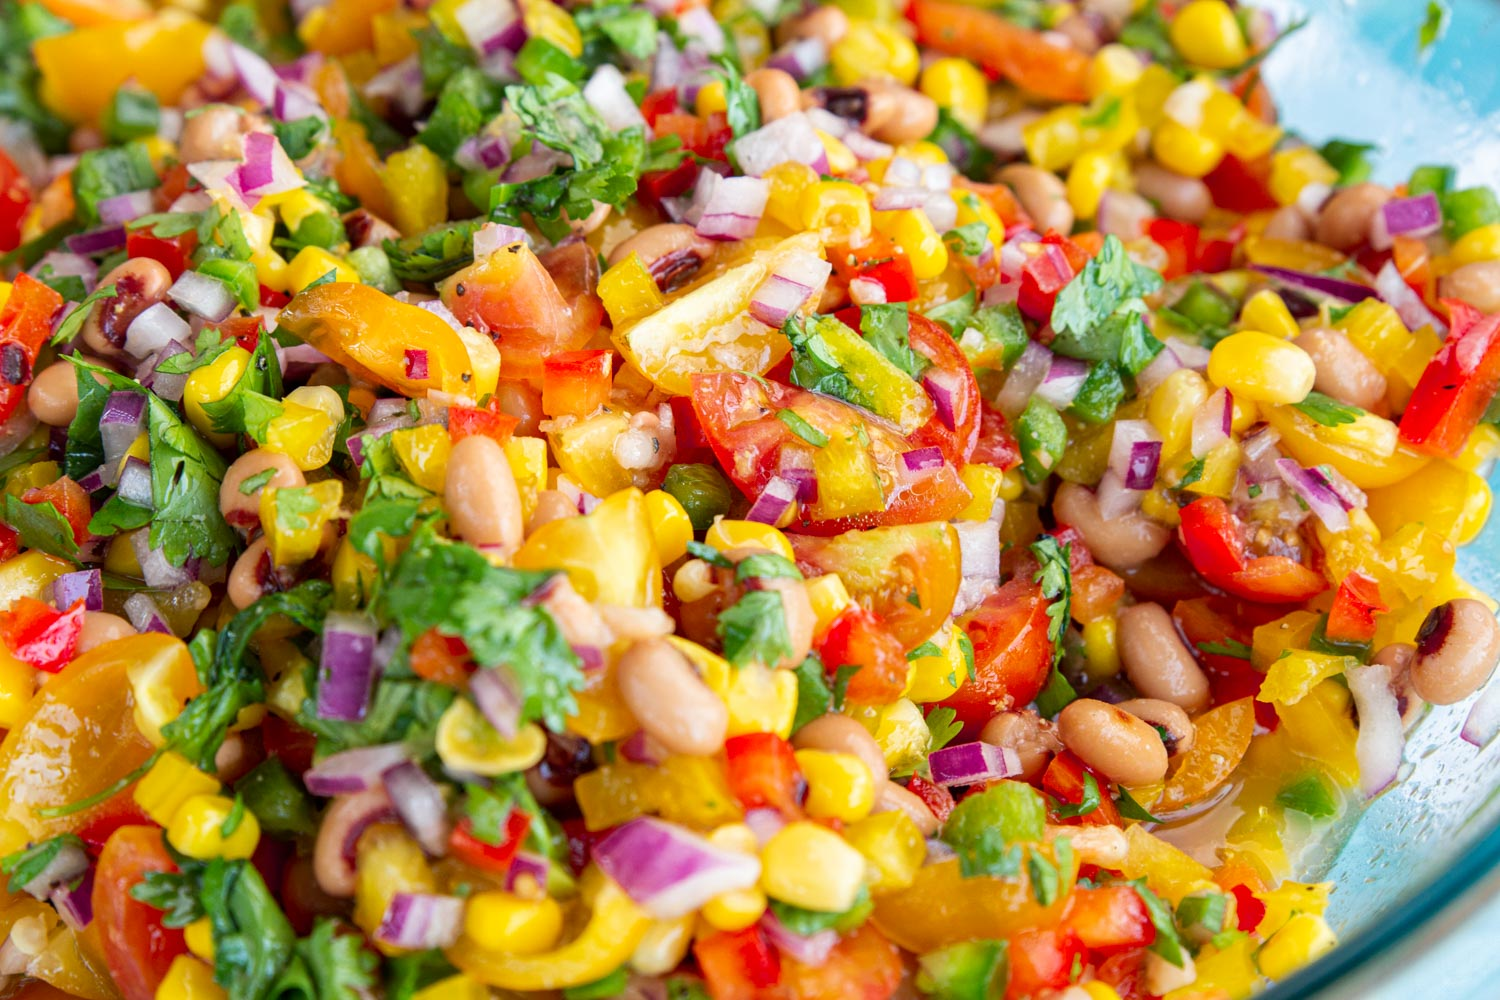 A colorful bowl of Texas Caviar with corn, bell peppers, red onion, tomatoes, cilantro, black eyed peas, and jalapenos, in red wine vinegar dressing.